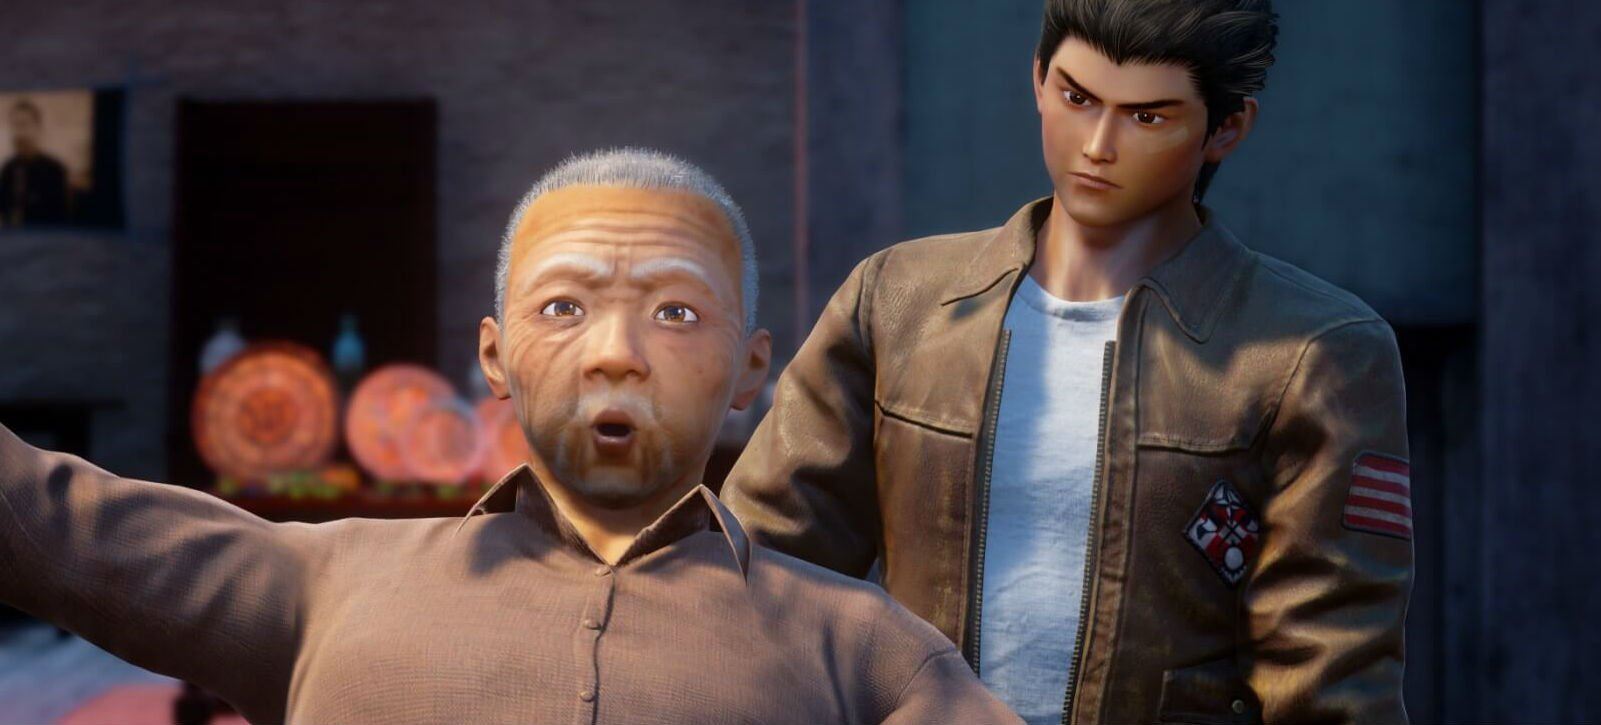 Shenmue 3 is getting a 'one hour' demo next month for backers screenshot